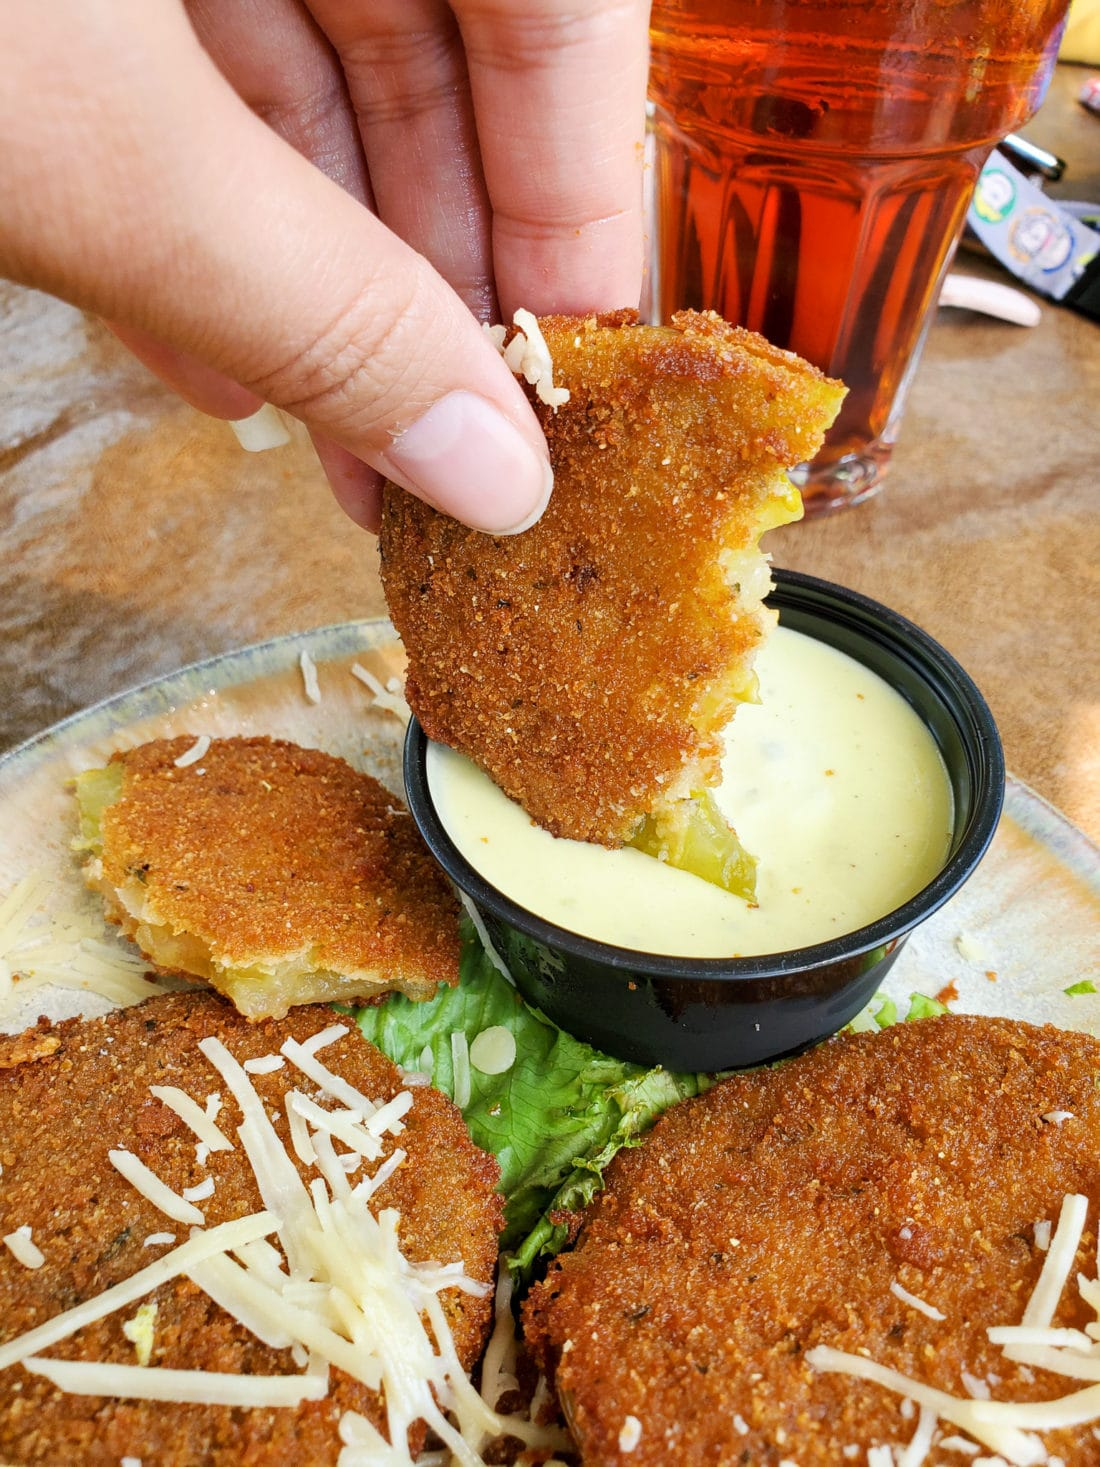 The Old Mill Pottery Cafe & Grille Fried Green Tomatoes Dipped. The Pottery House Cafe serves freshly made sandwiches, salads, and hearty entrees on dishes created by our potters right next door. Read my full review which includes photos of this beautiful and delicious location in Pigeon Forge, TN.